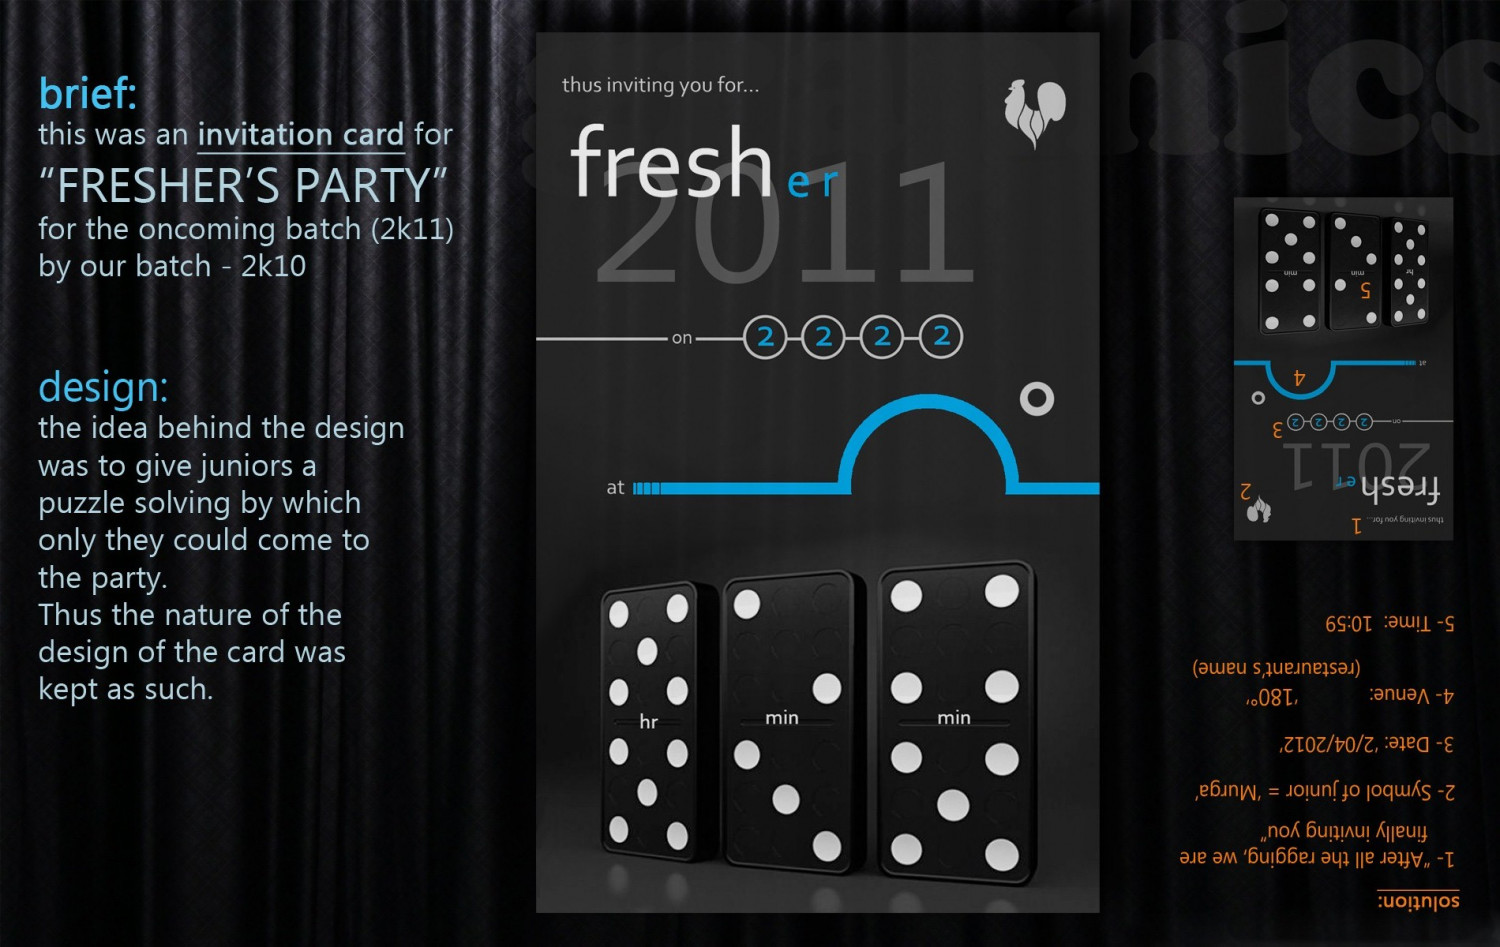 Invitation Card For Freshers Party Visual Ly